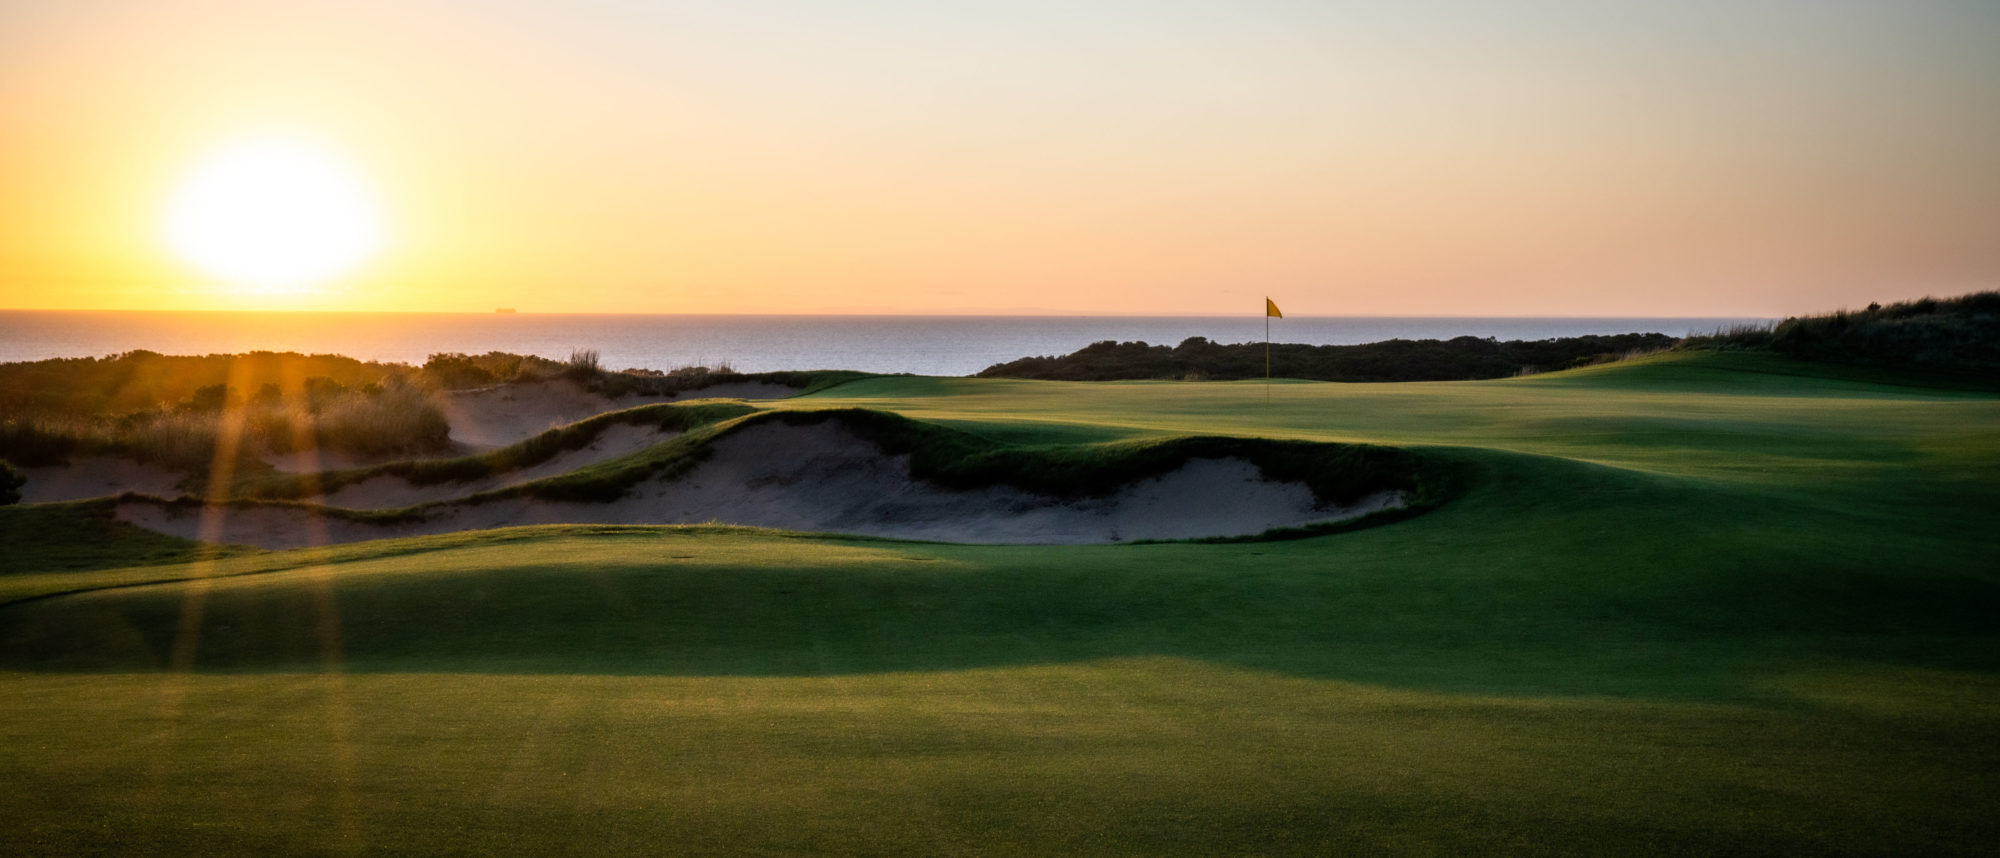 The elevations of the tee and green at the new par-3 16th are set so that players see the flag flying against the blue of the ocean in the background.